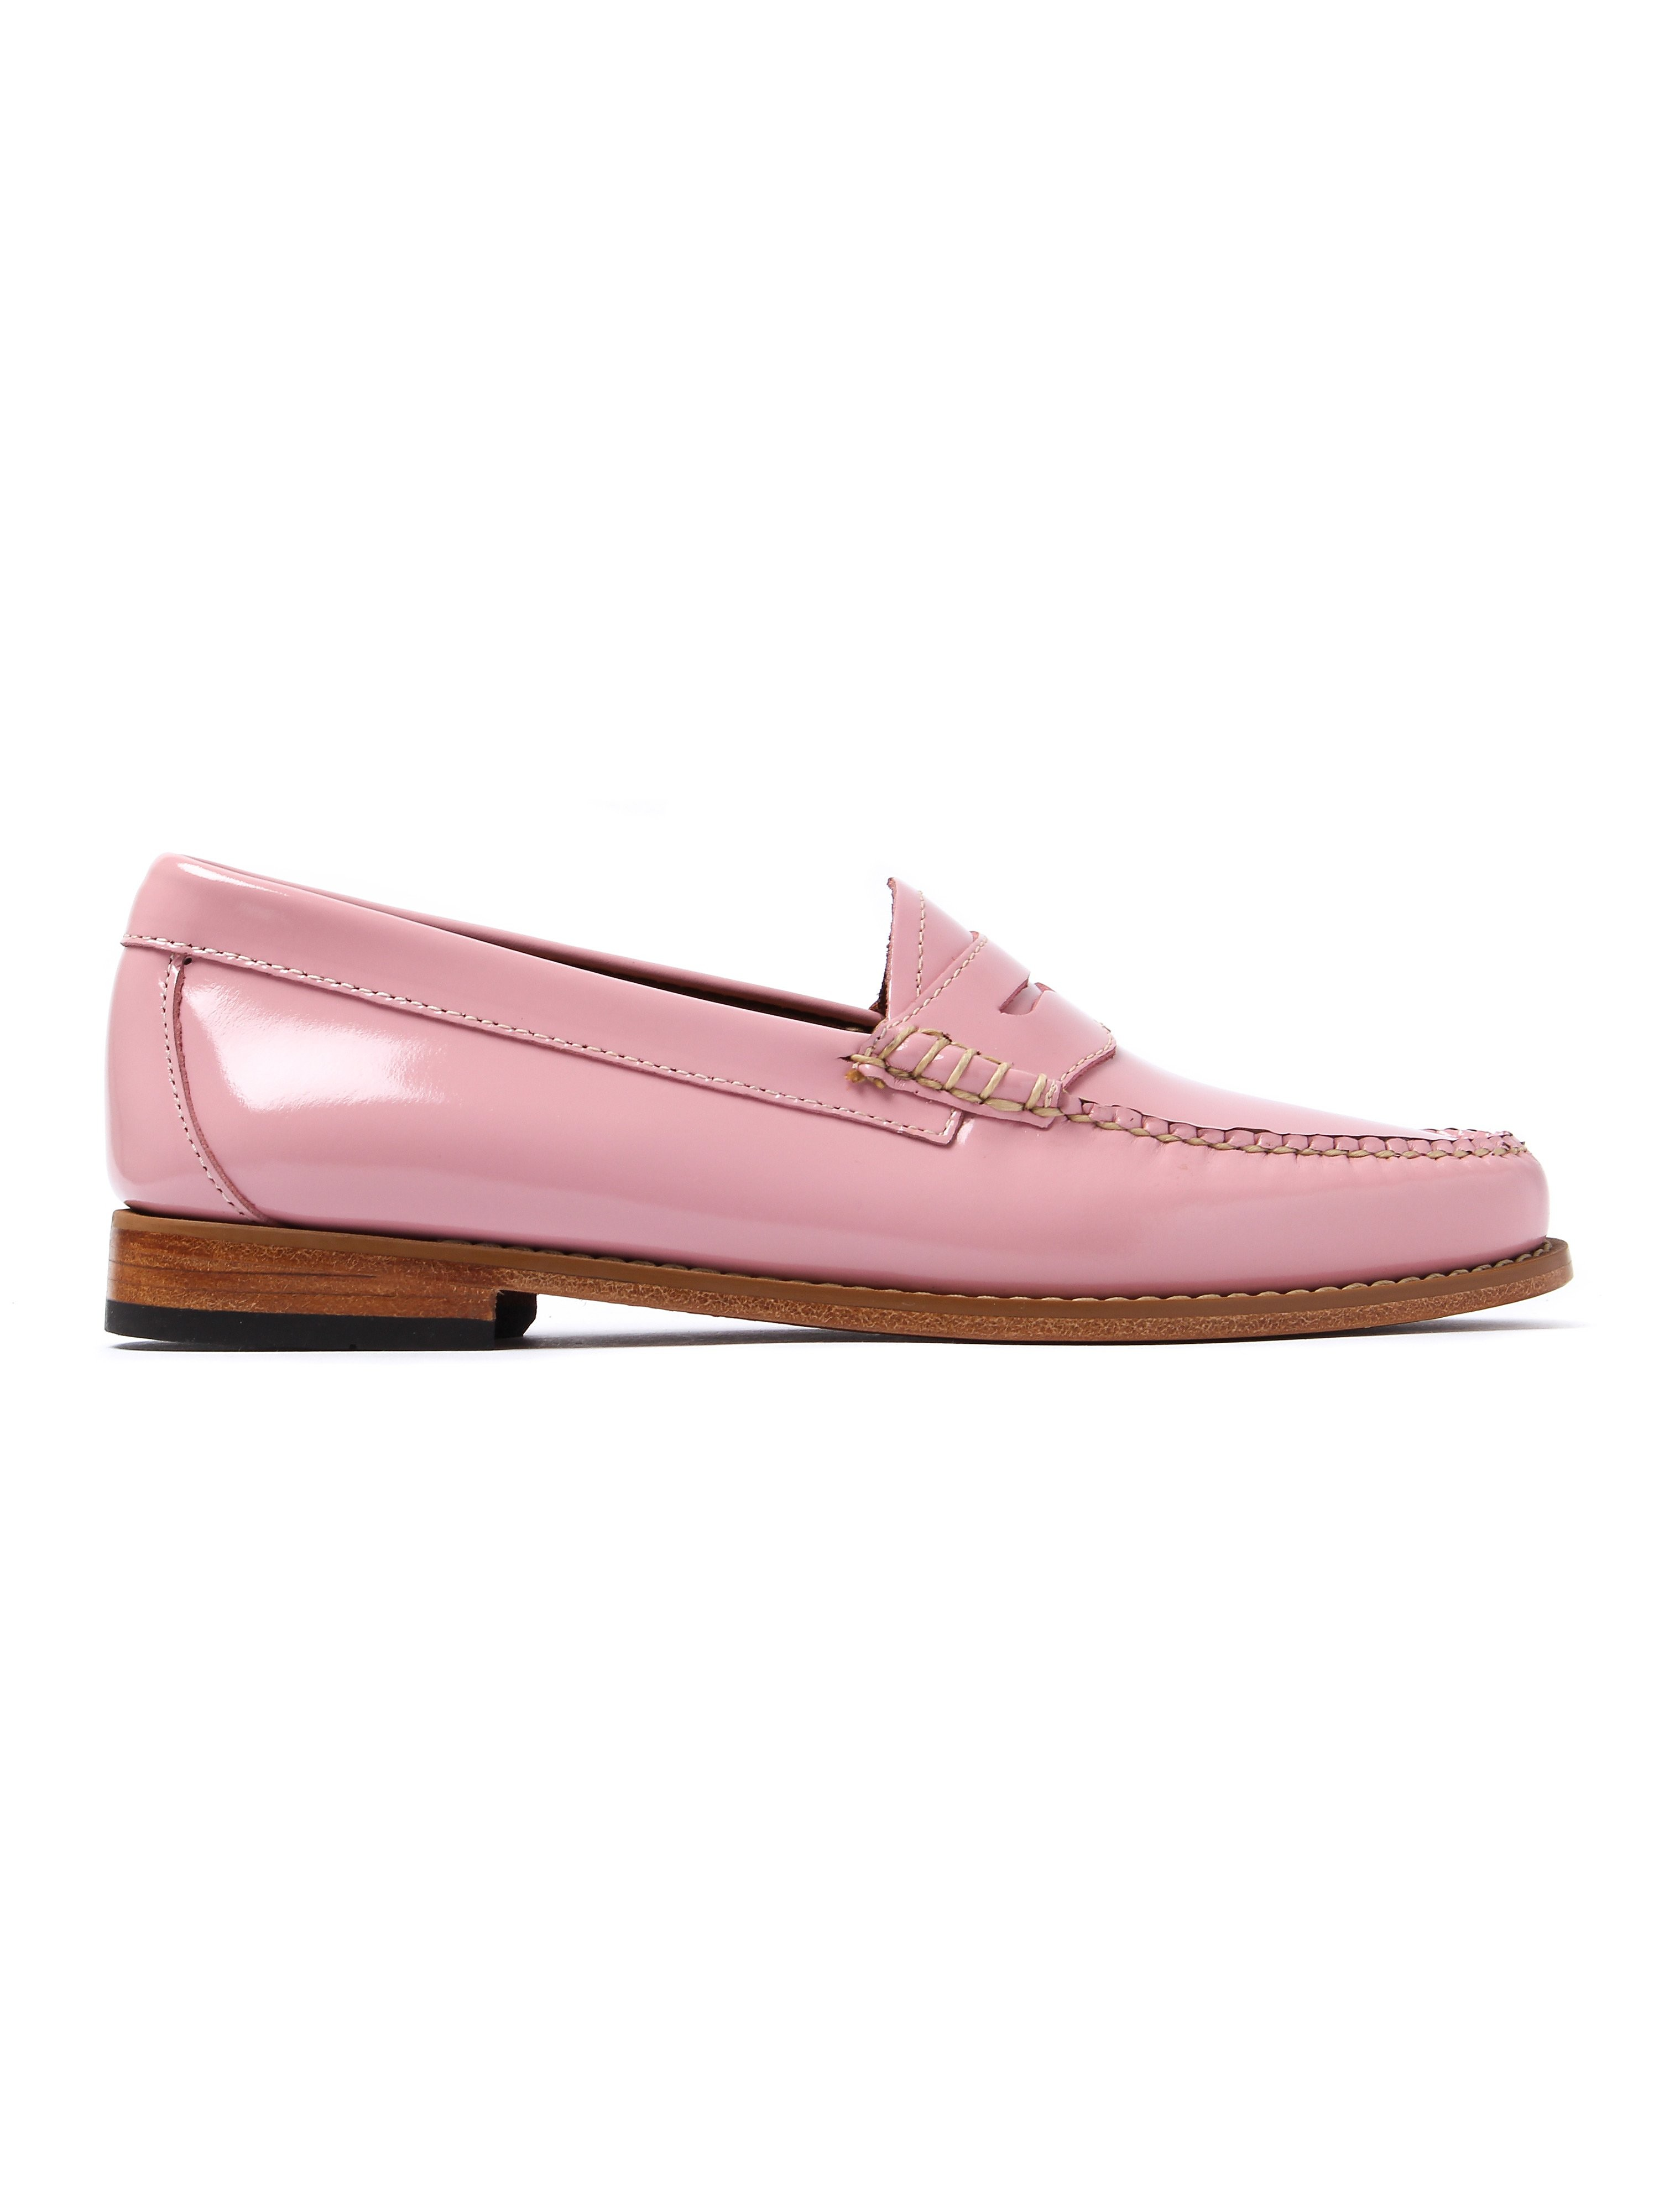 G.H. Bass Women's Weejun Penny Wheel Loafer - Bridal Rose Patent Leather